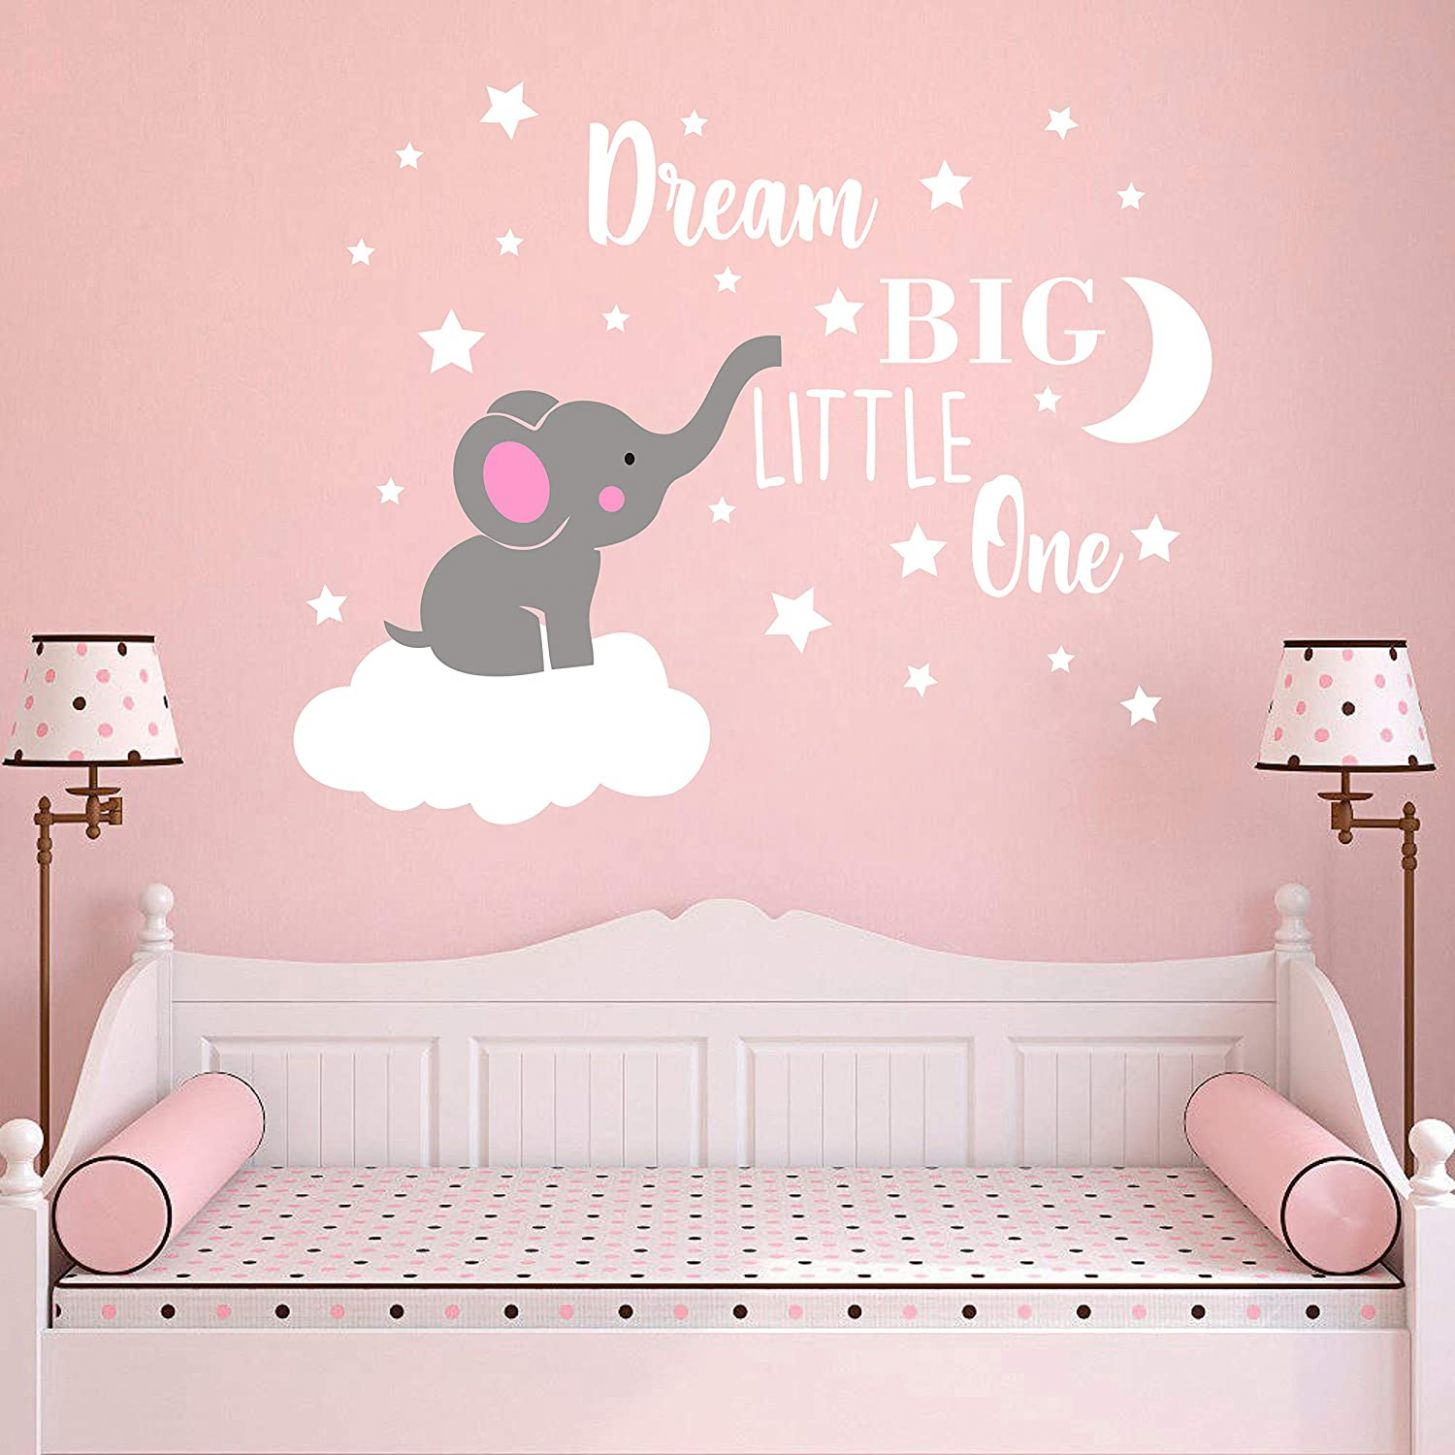 Dream Big Little One Elephant Wall Decal, Quote Wall Stickers, Baby Room  Wall Decor, Vinyl Wall Decals for Children Baby Kids Boy Girl Bedroom  Nursery ...